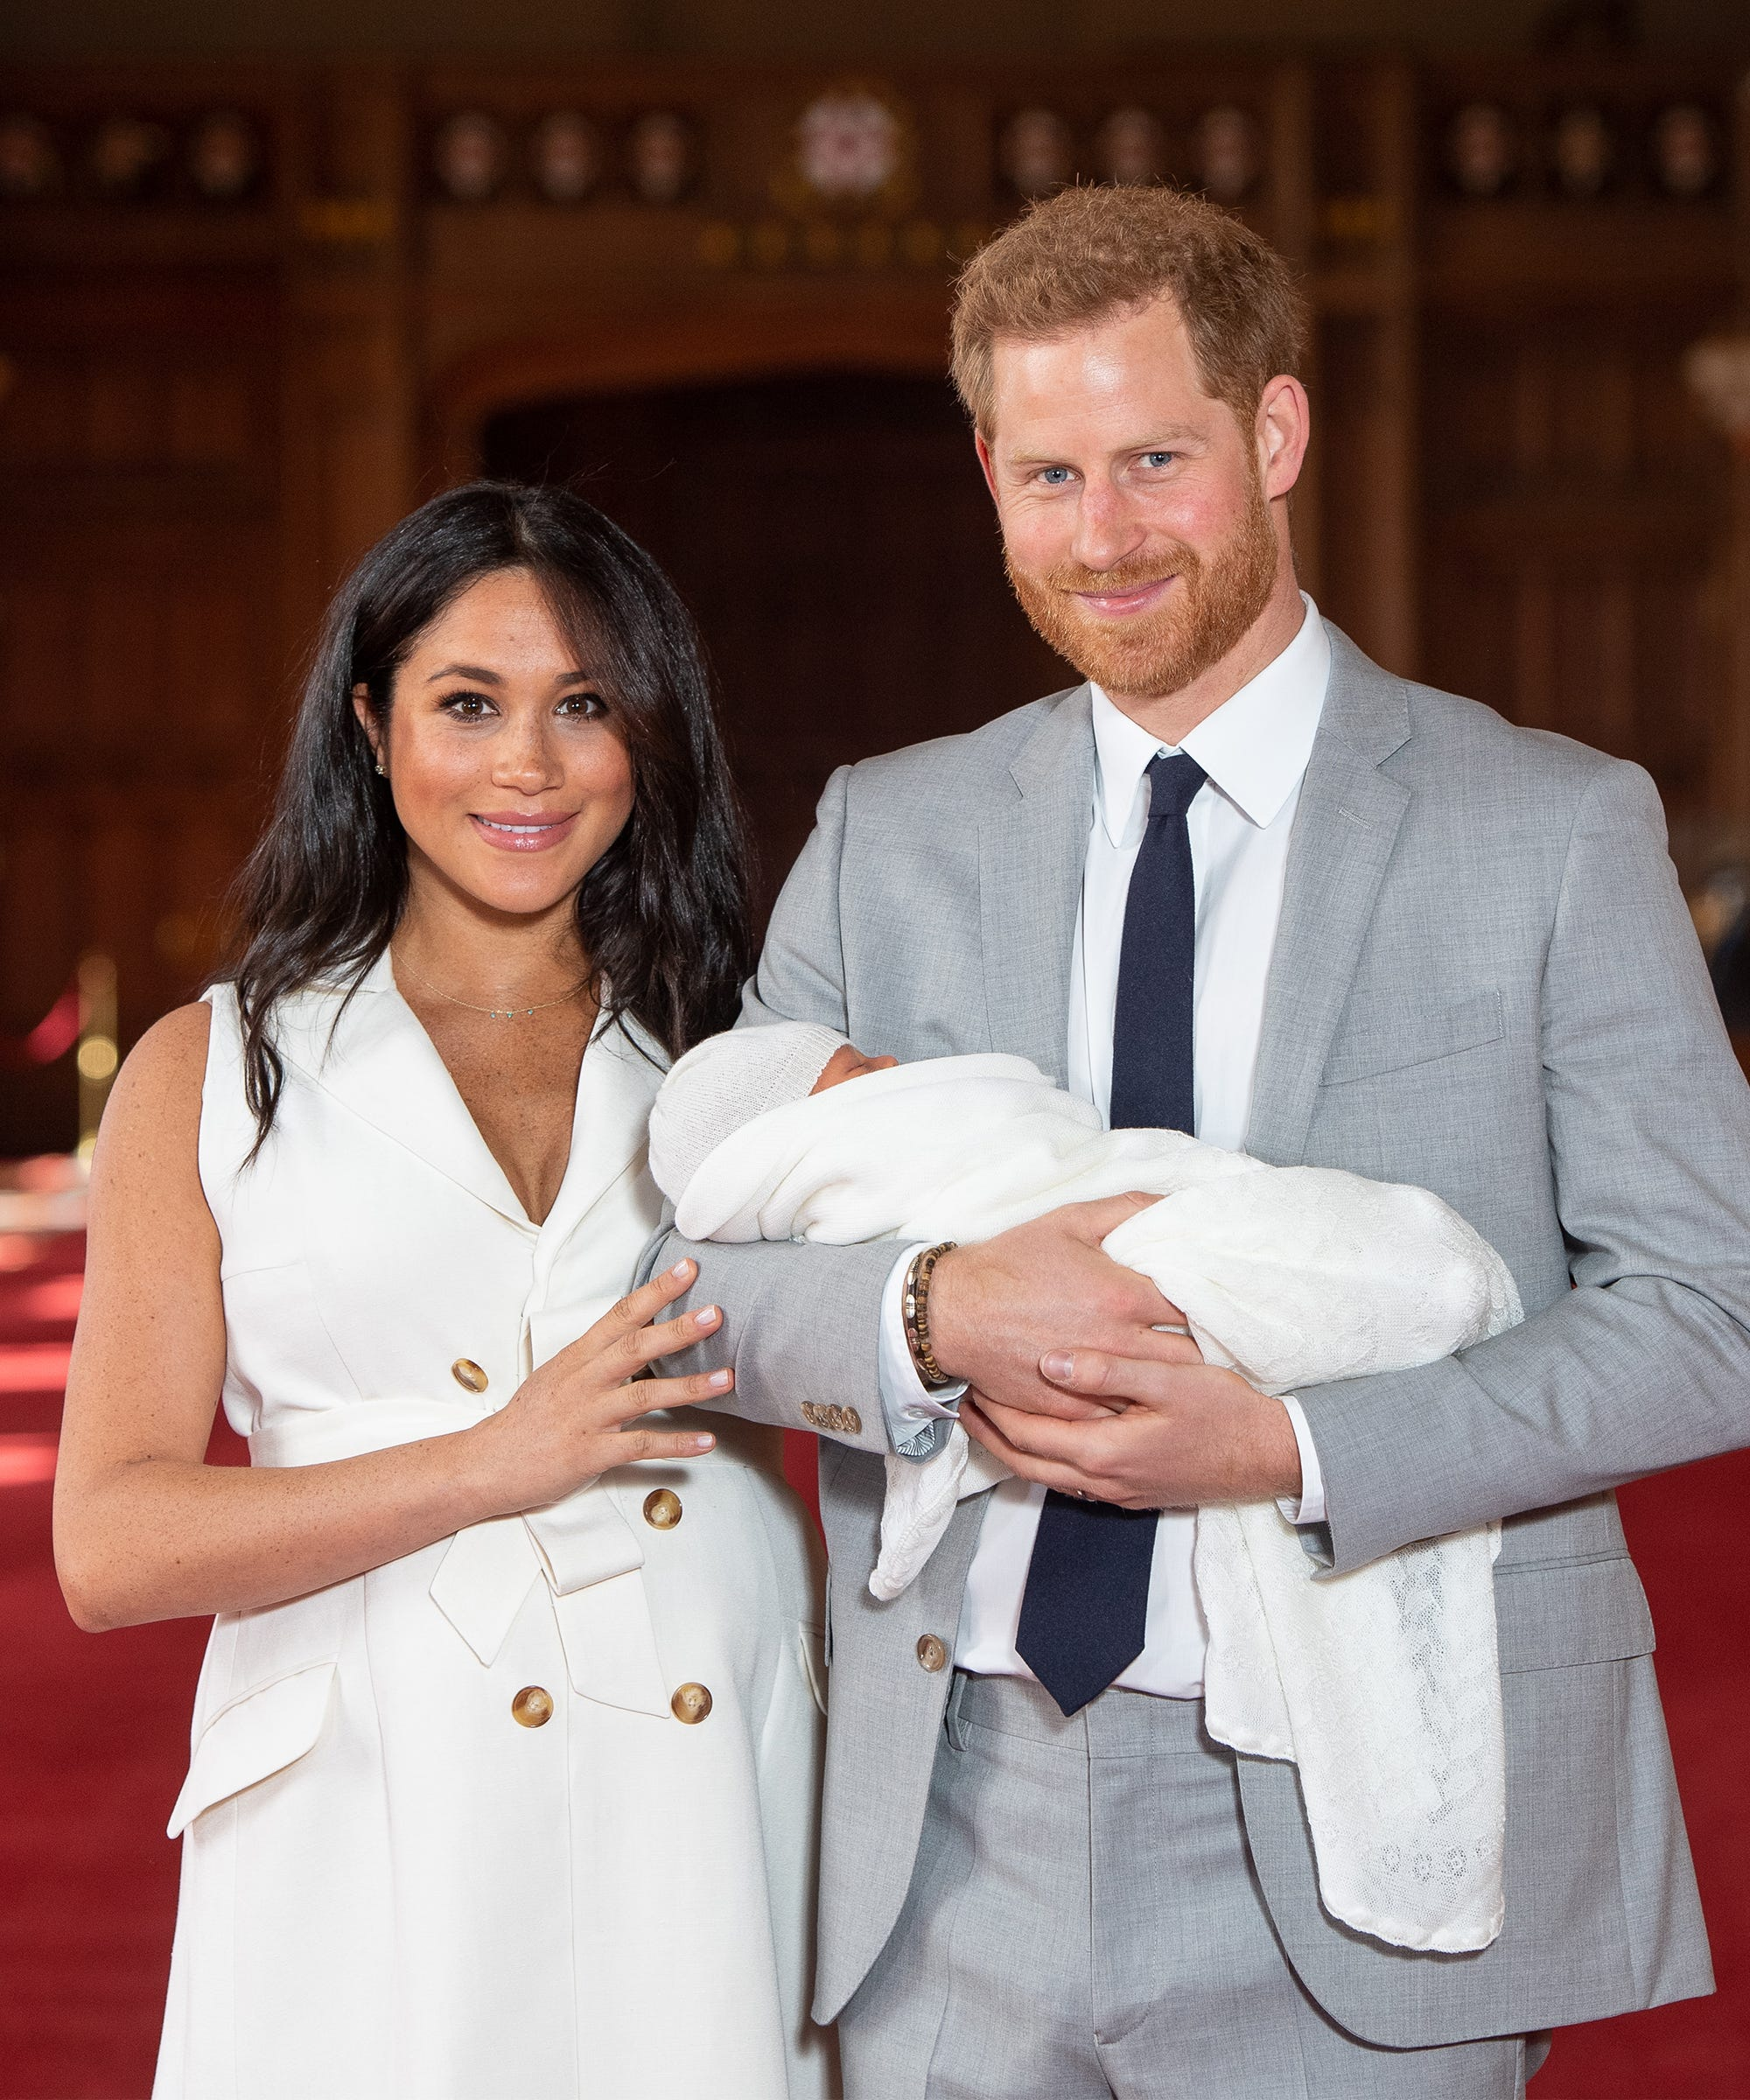 Baby Archie Is About To Make His First Royal Visit To America